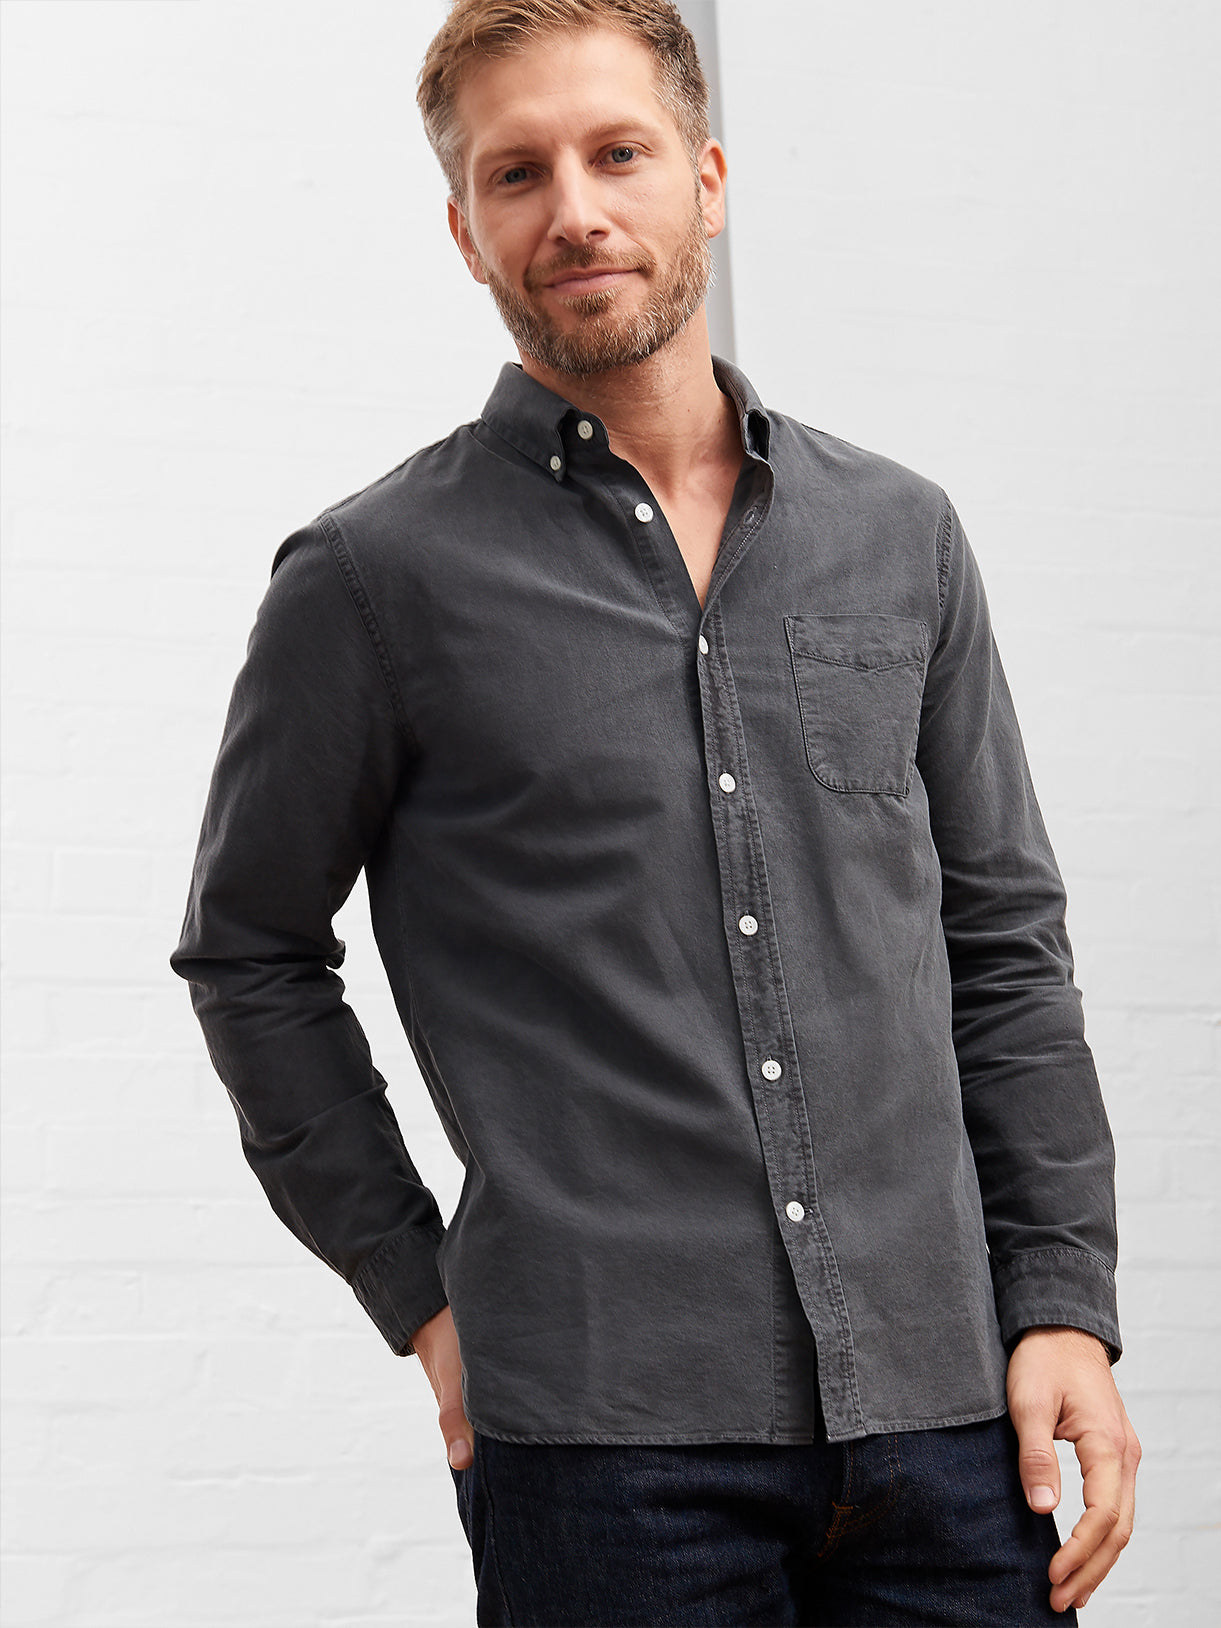 Men's Oxford Shirt Granite